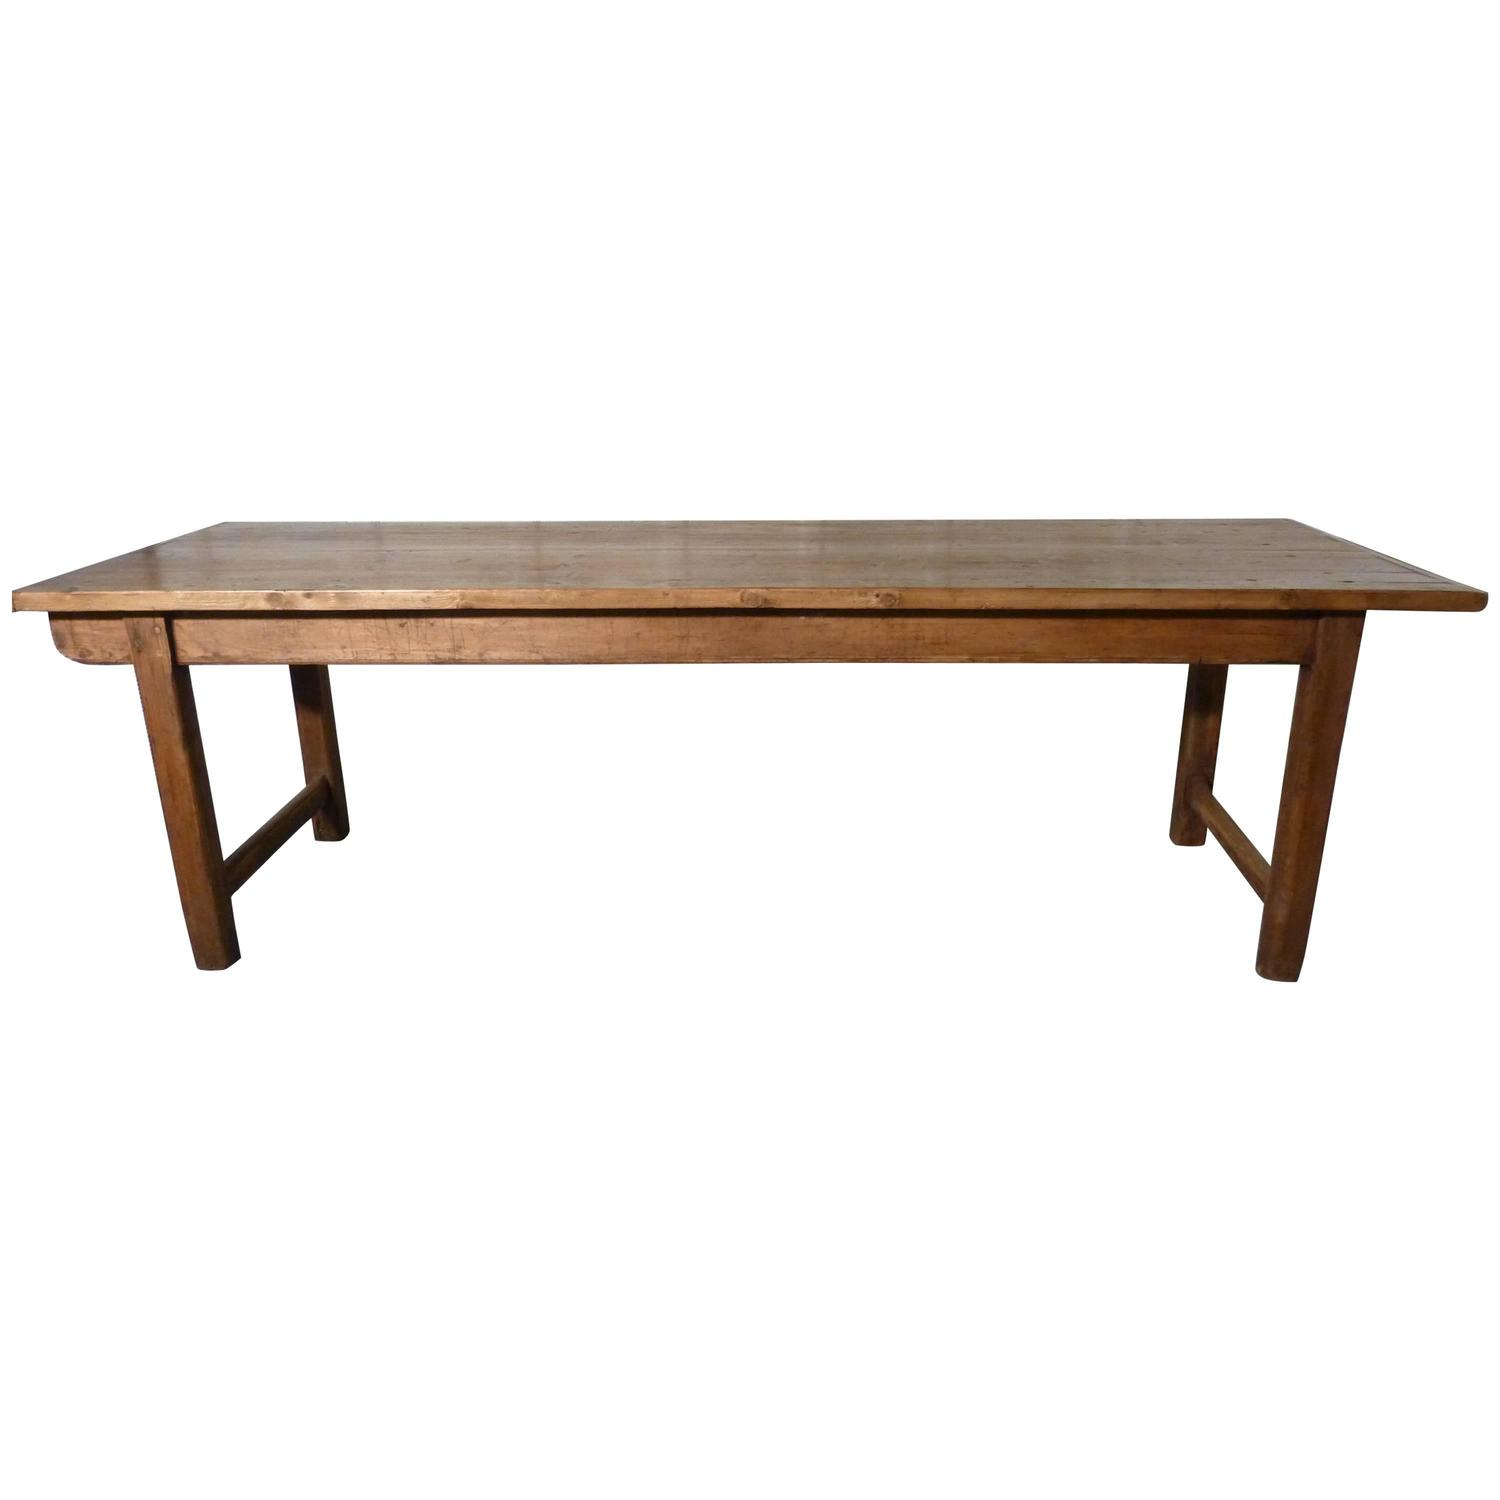 Farmhouse table for sale kitchen tabledining tablerustic for Rustic farm tables for sale